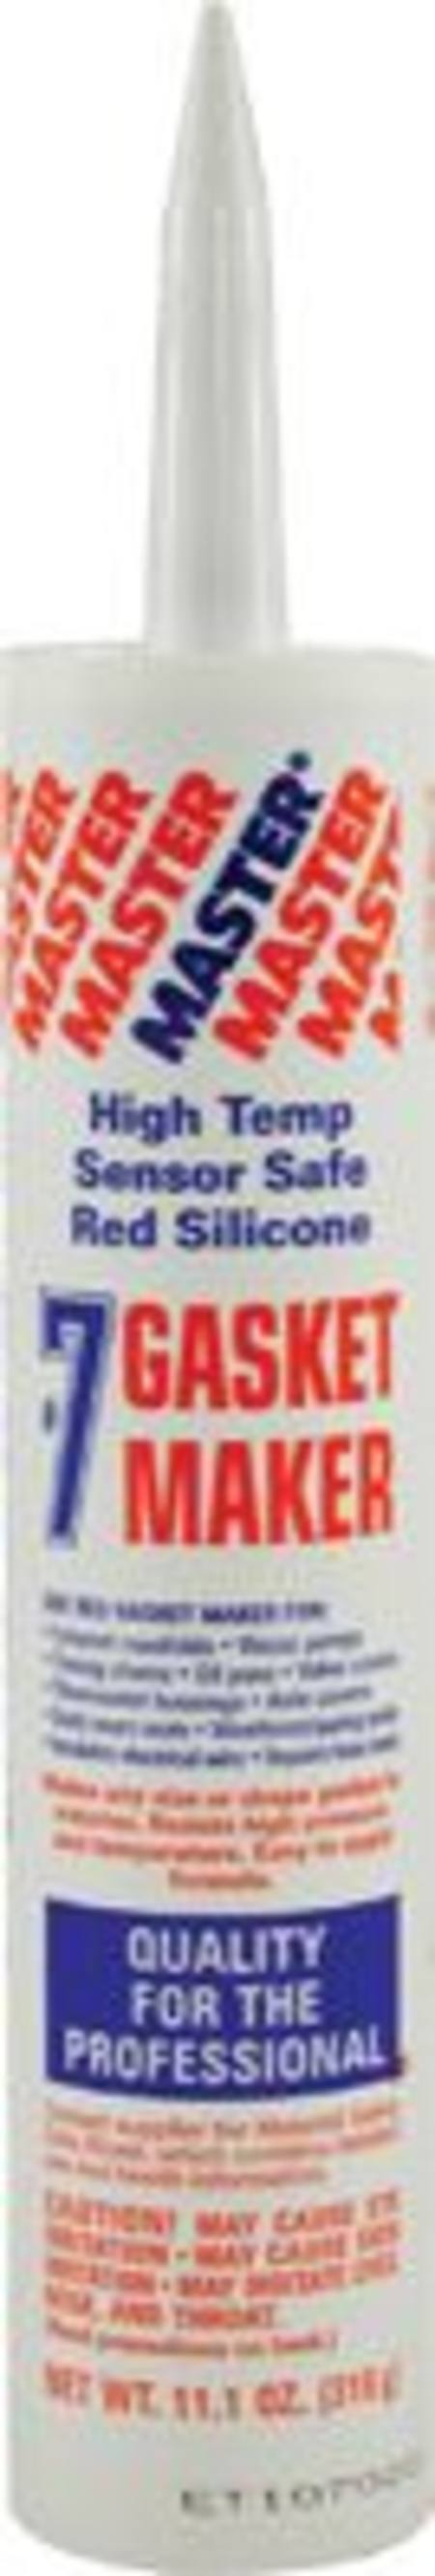 Buy MASTER #7 HI TEMP RTV SILICONE 316g CARTRIDGE in NZ.